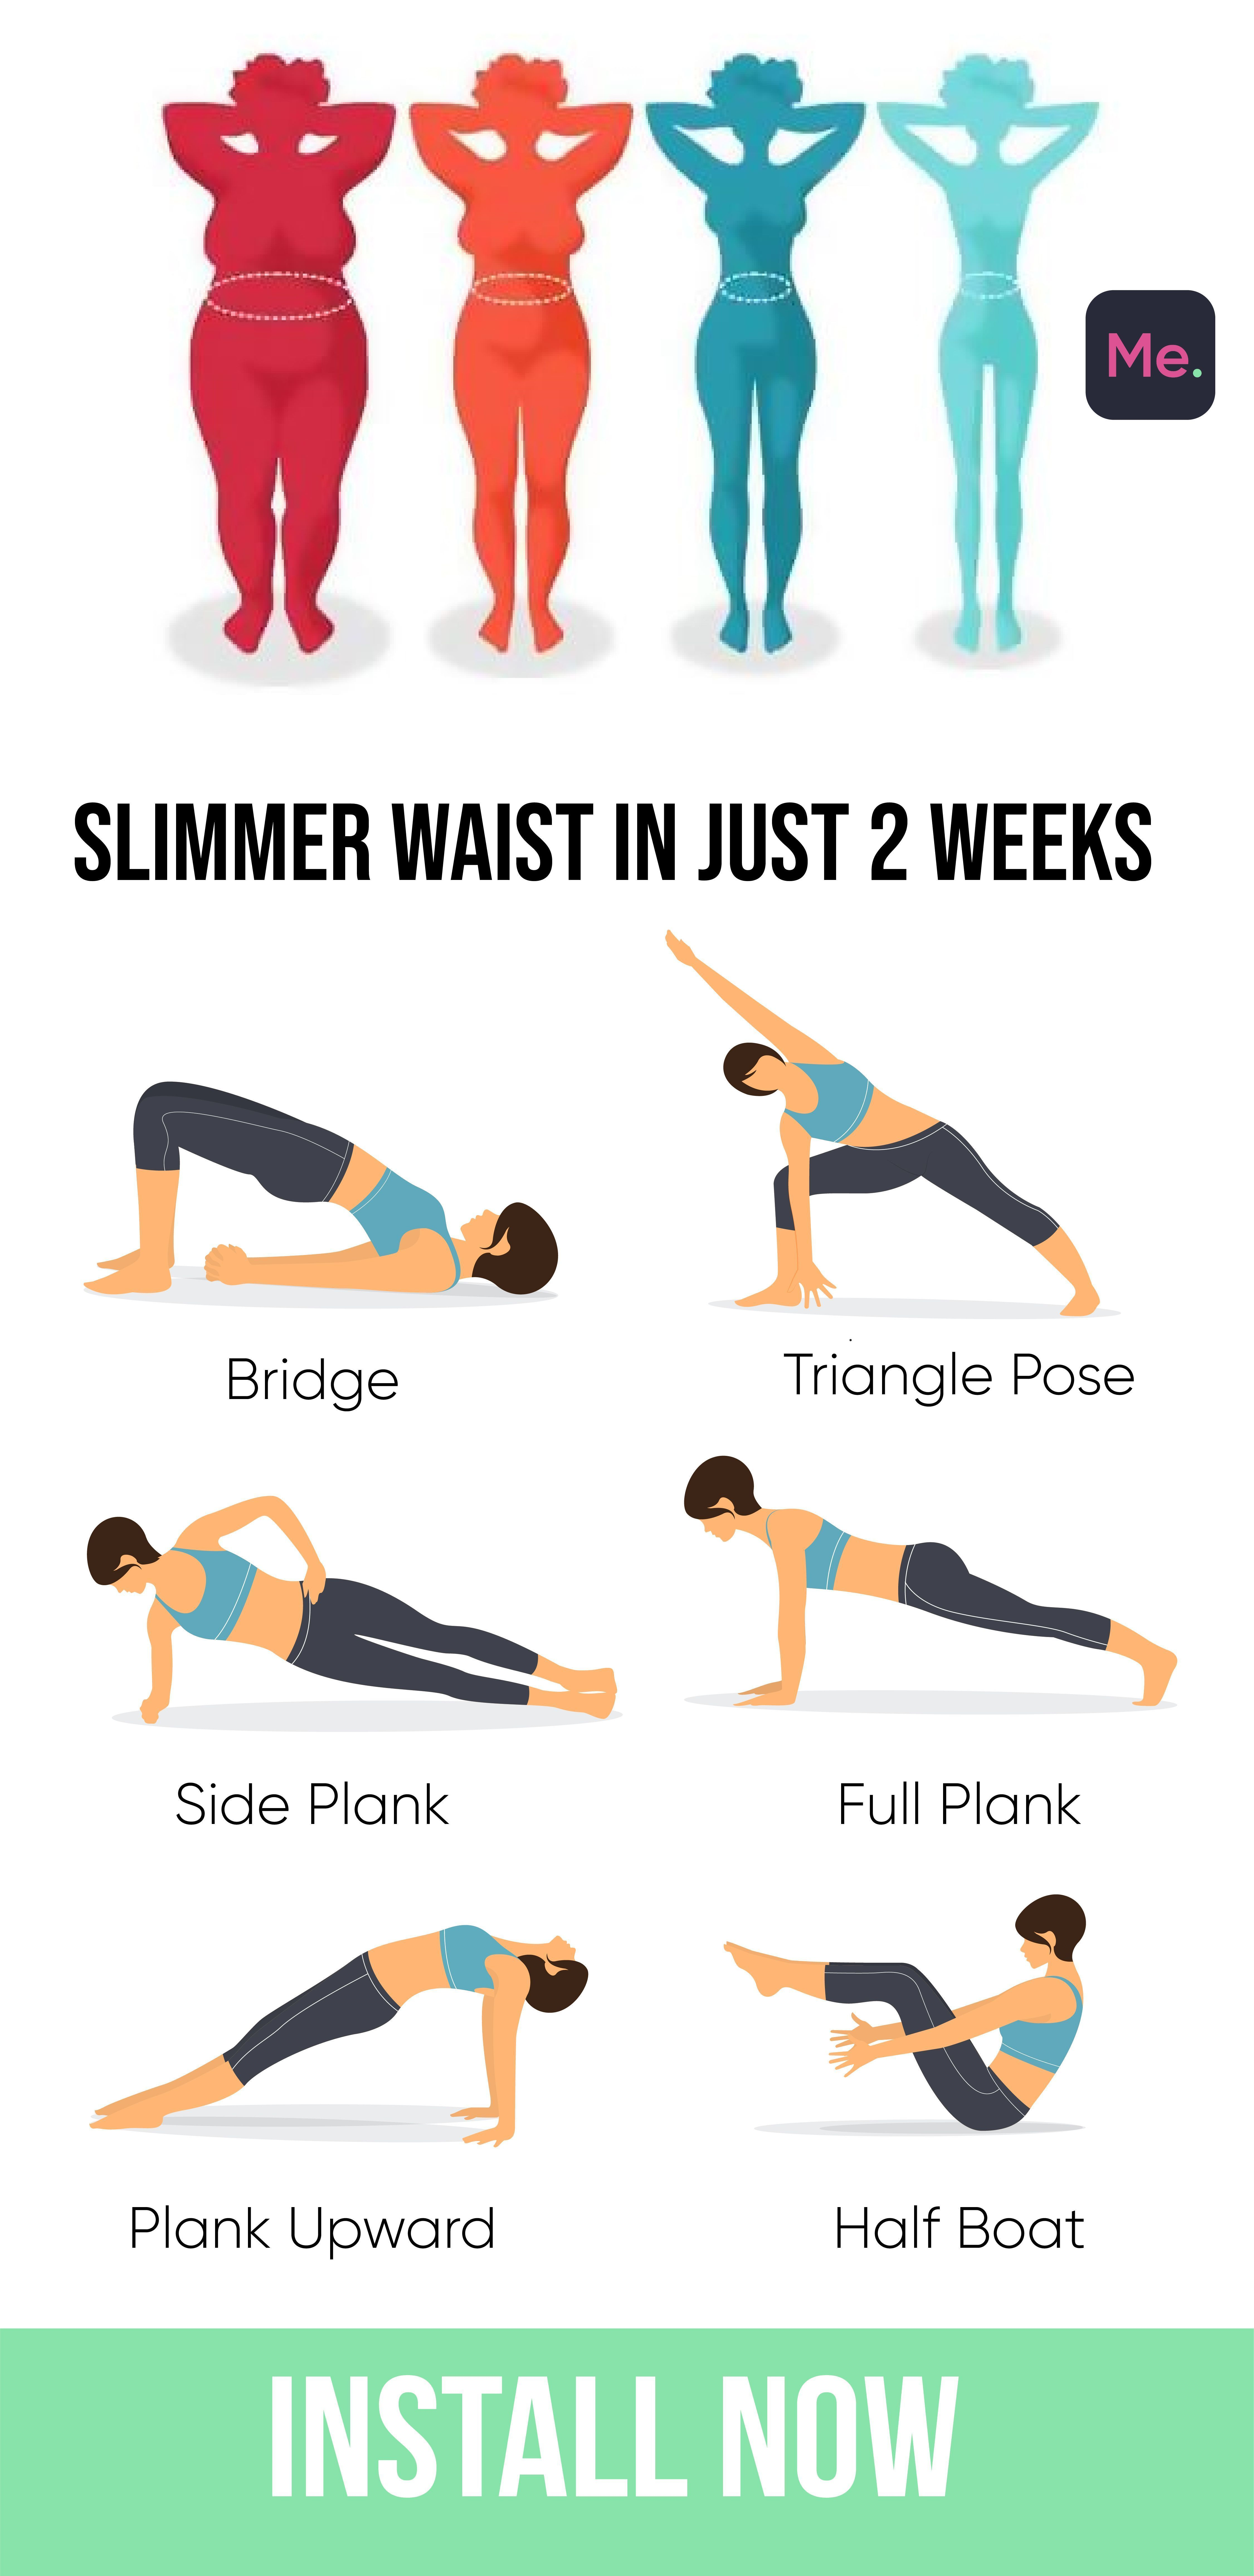 Fast weight loss tips for summer #easyweightloss <= | how to help lose weight#weightlossjourney #fit...